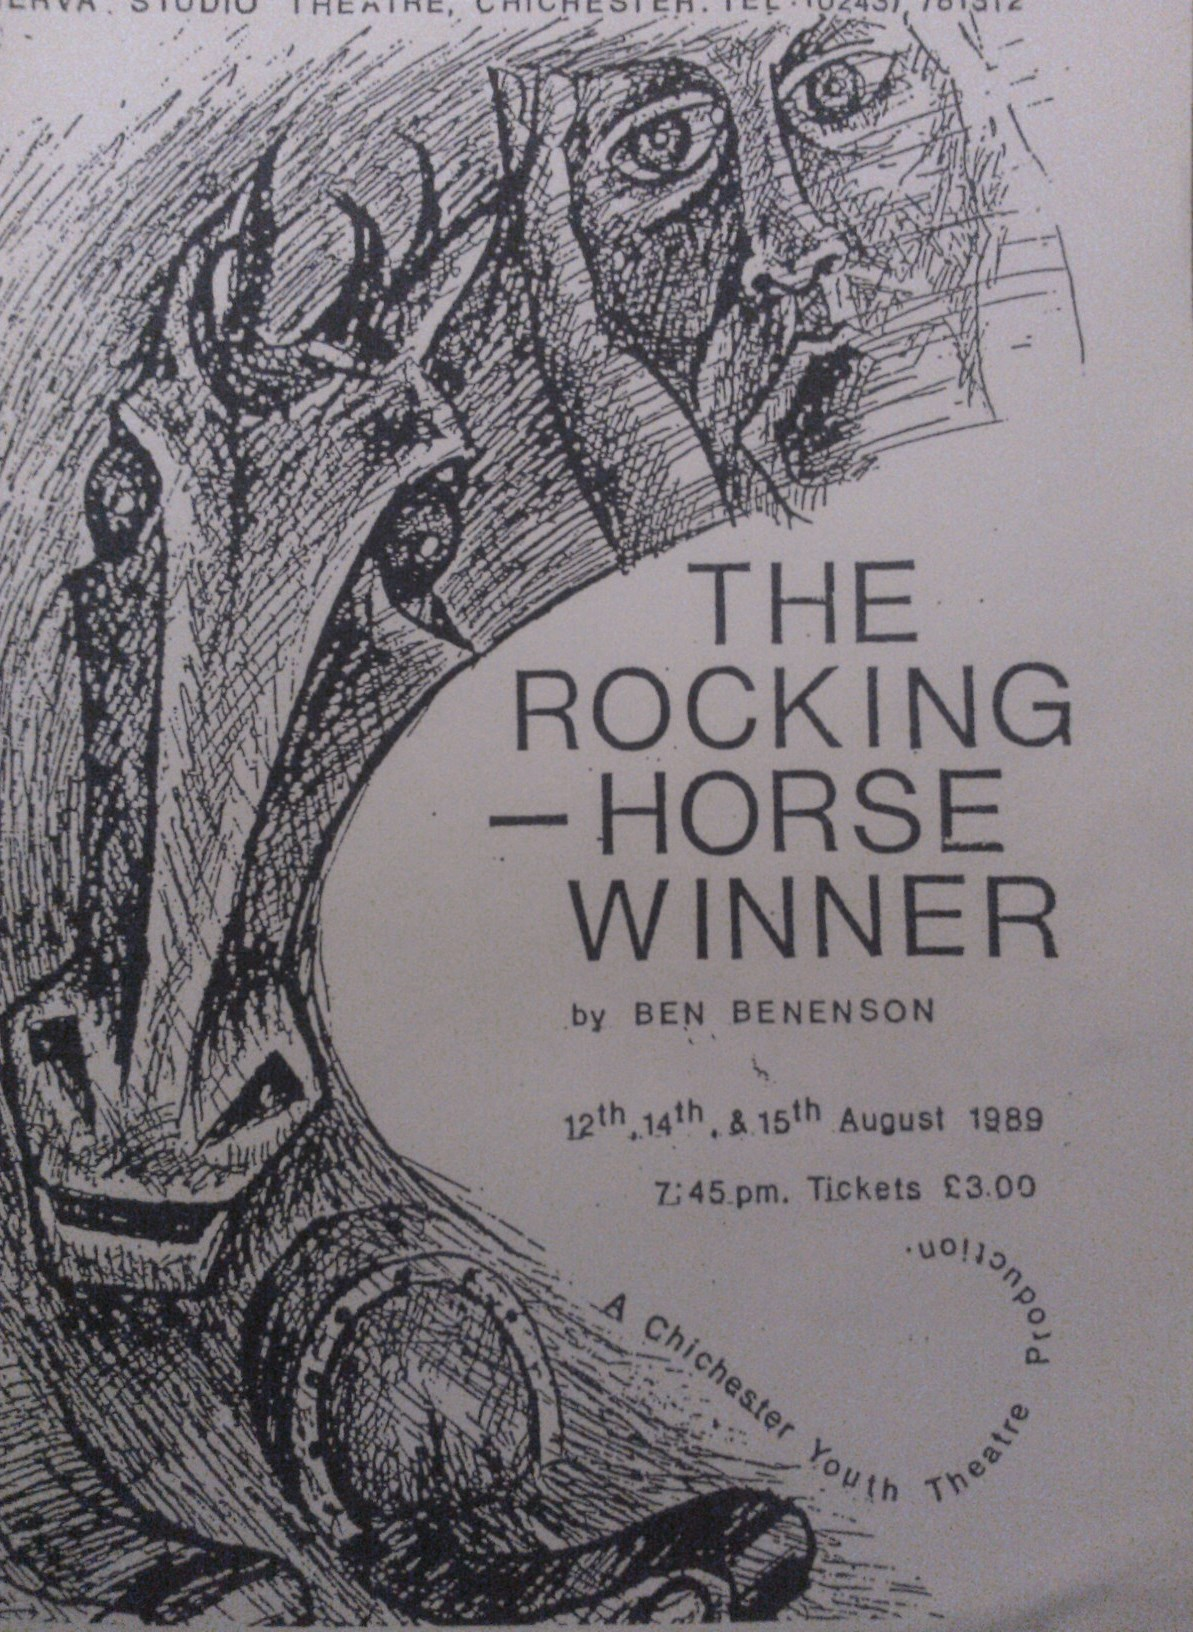 rocking horse winner research paper The rocking horse winner research papers look at the book by dh lawrence about a boys struggle throughout life to be accepted and loved by his mother even if it.